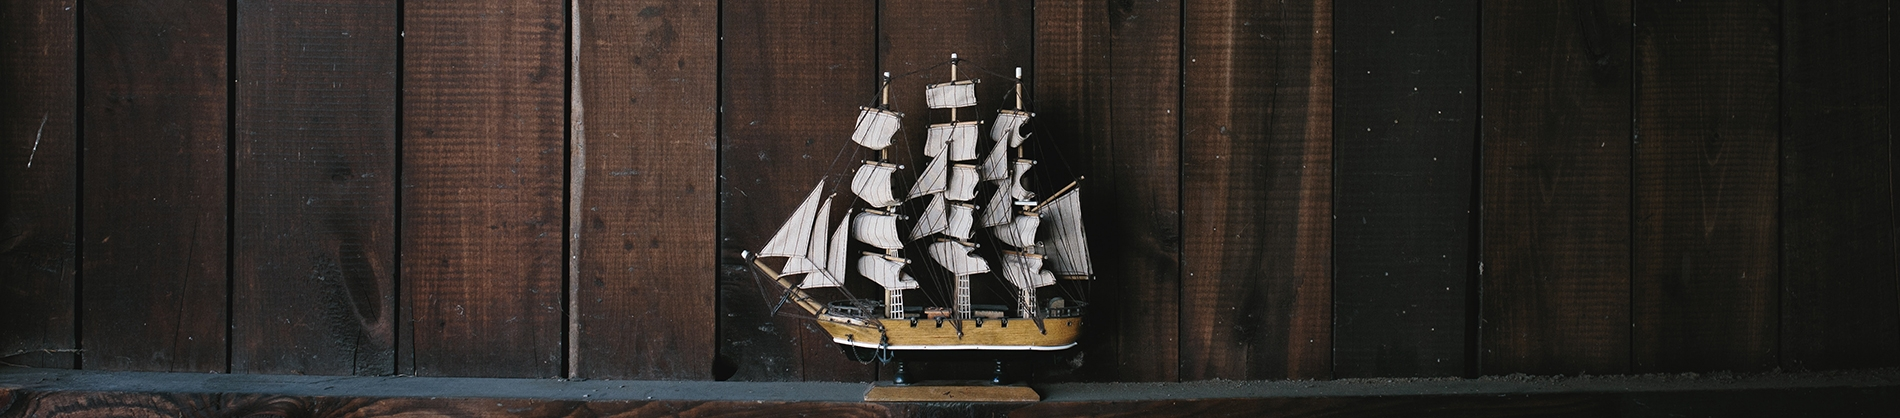 A replica of a ship with a wooden wall behind